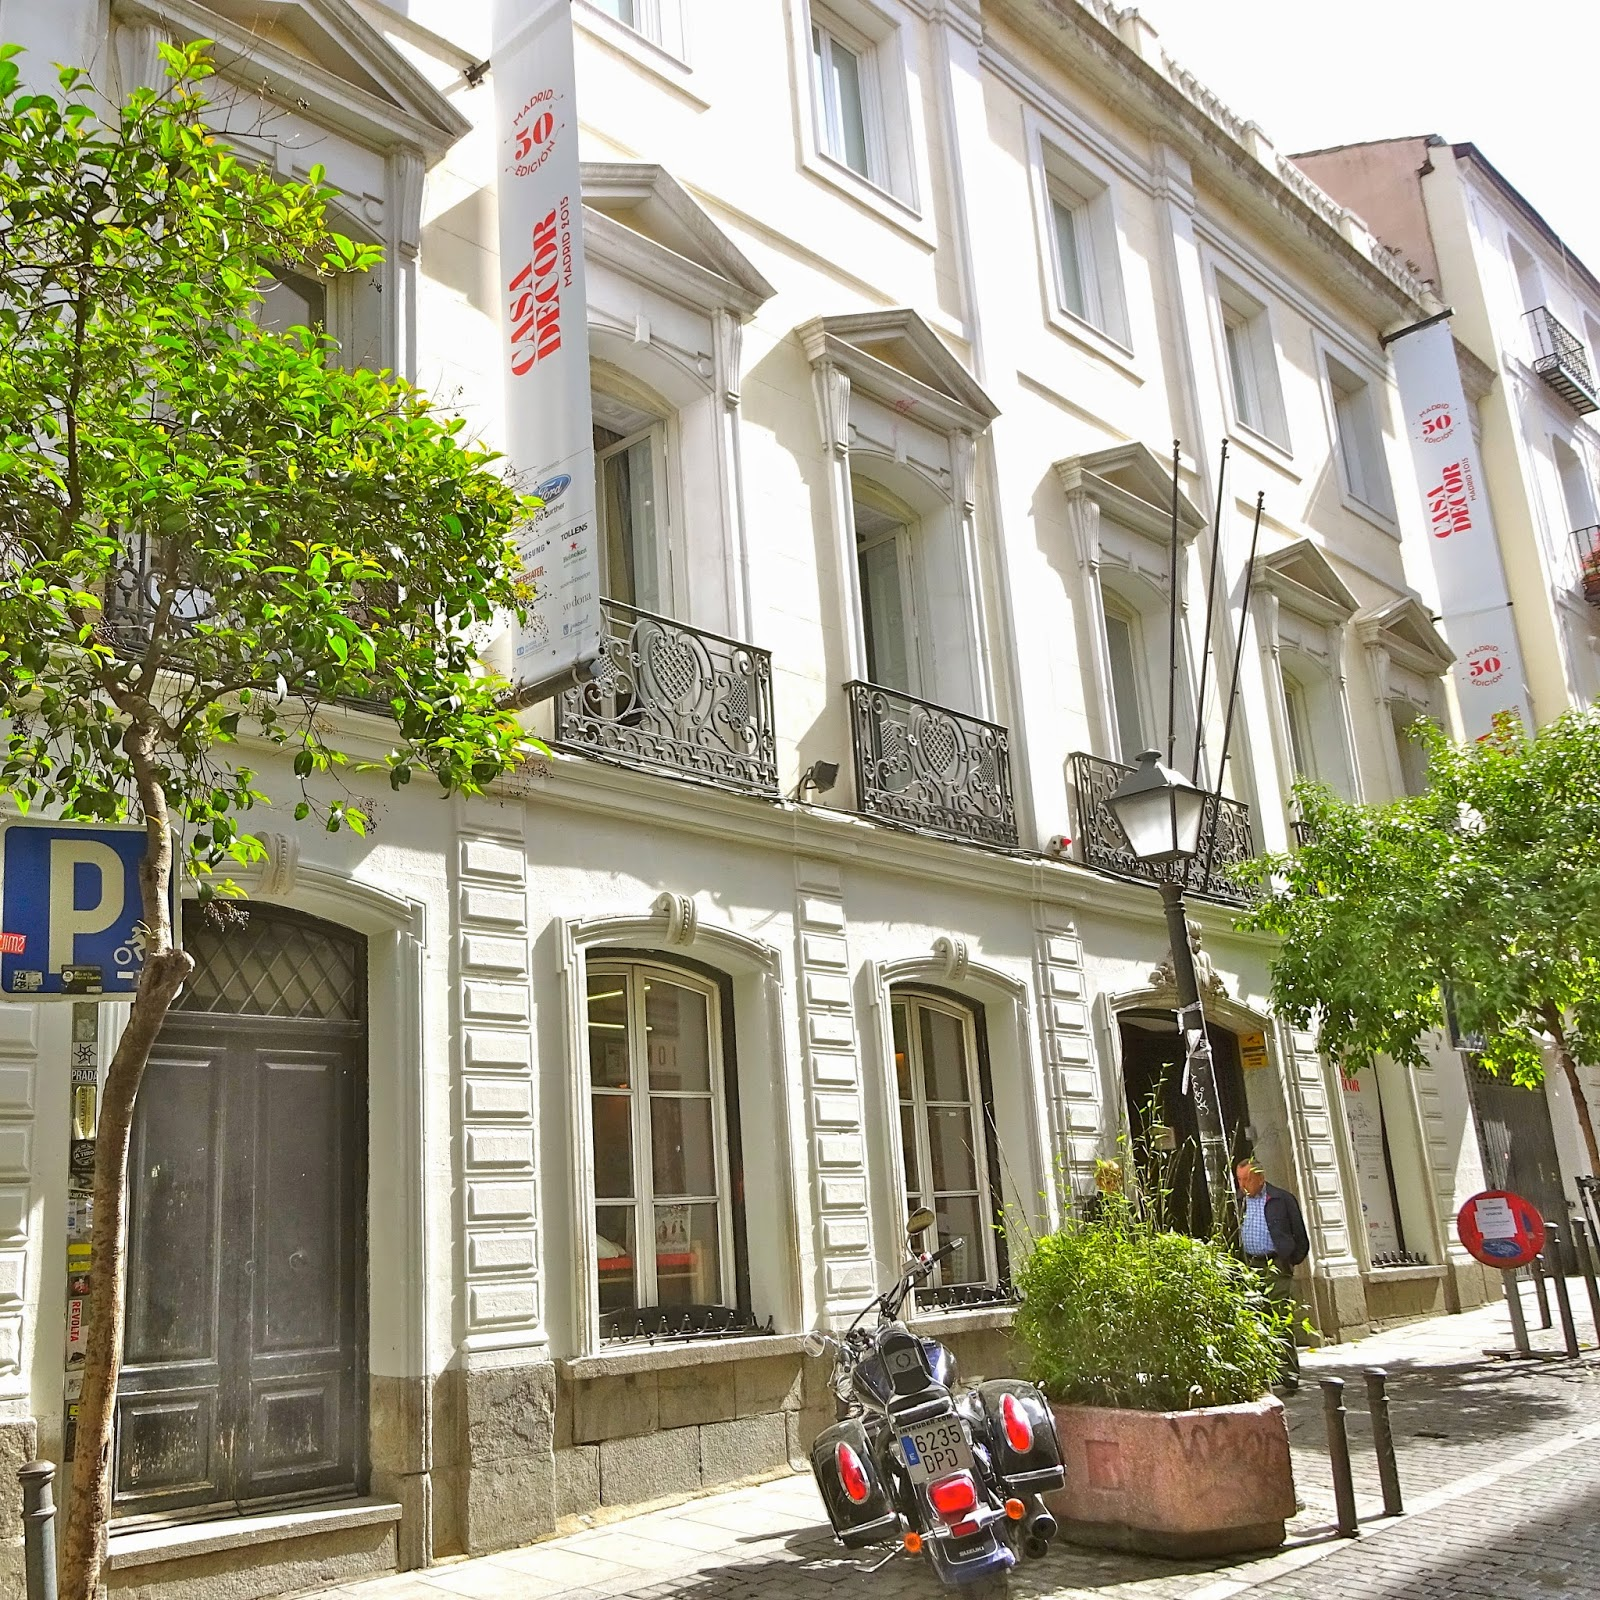 Casa muebles madrid awesome saln moderno with casa - Avant haus madrid ...